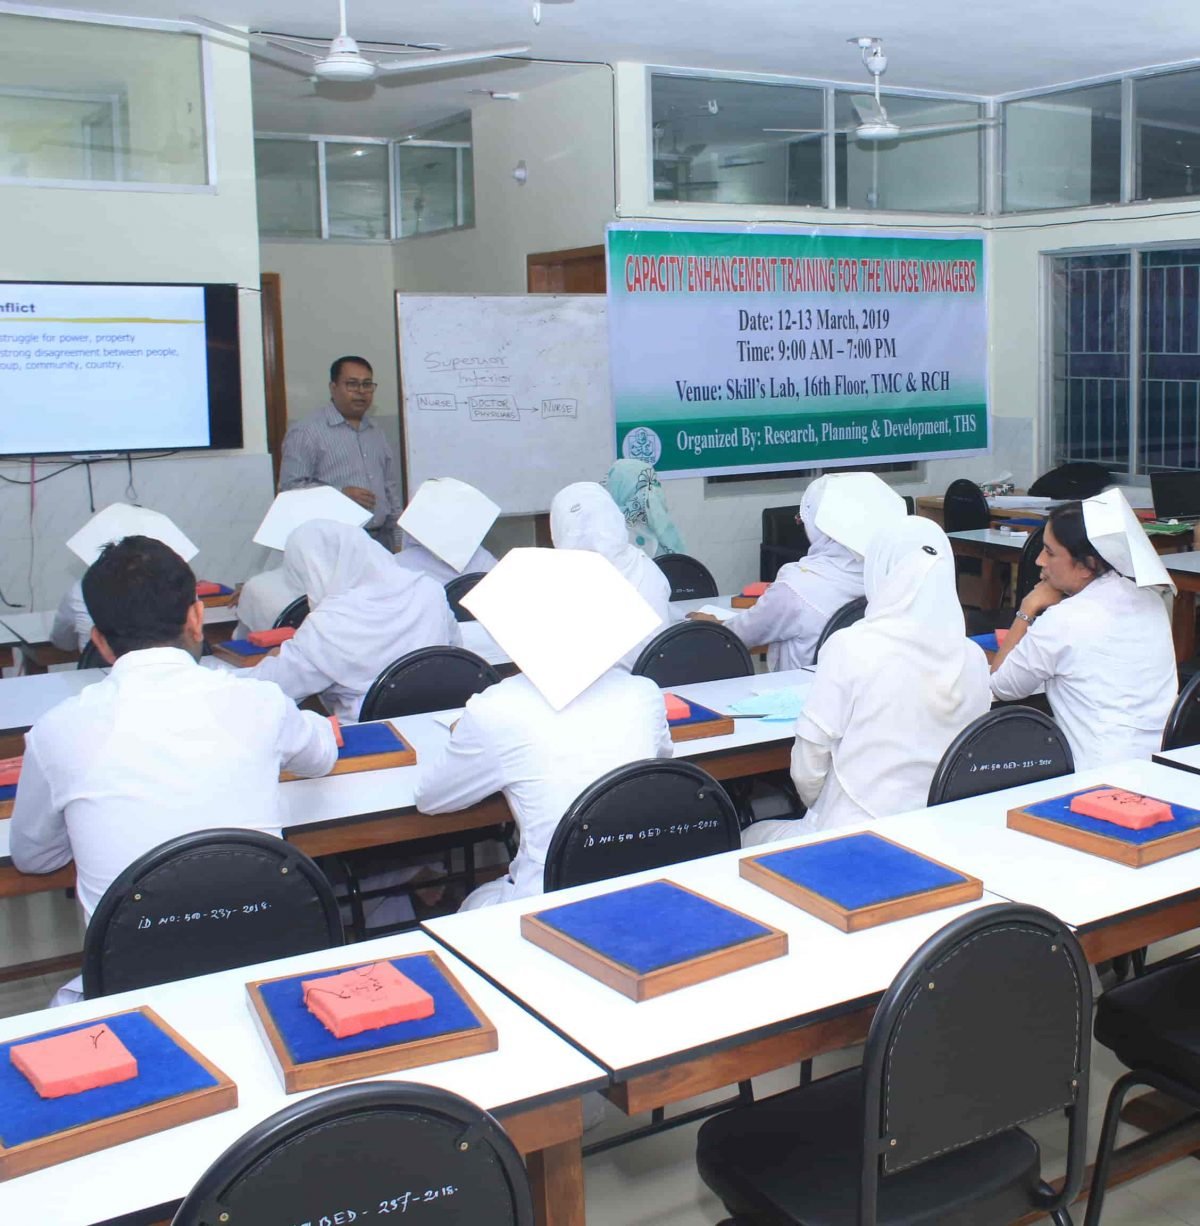 Capacity Enhancement Training for Nurse Managers (1)